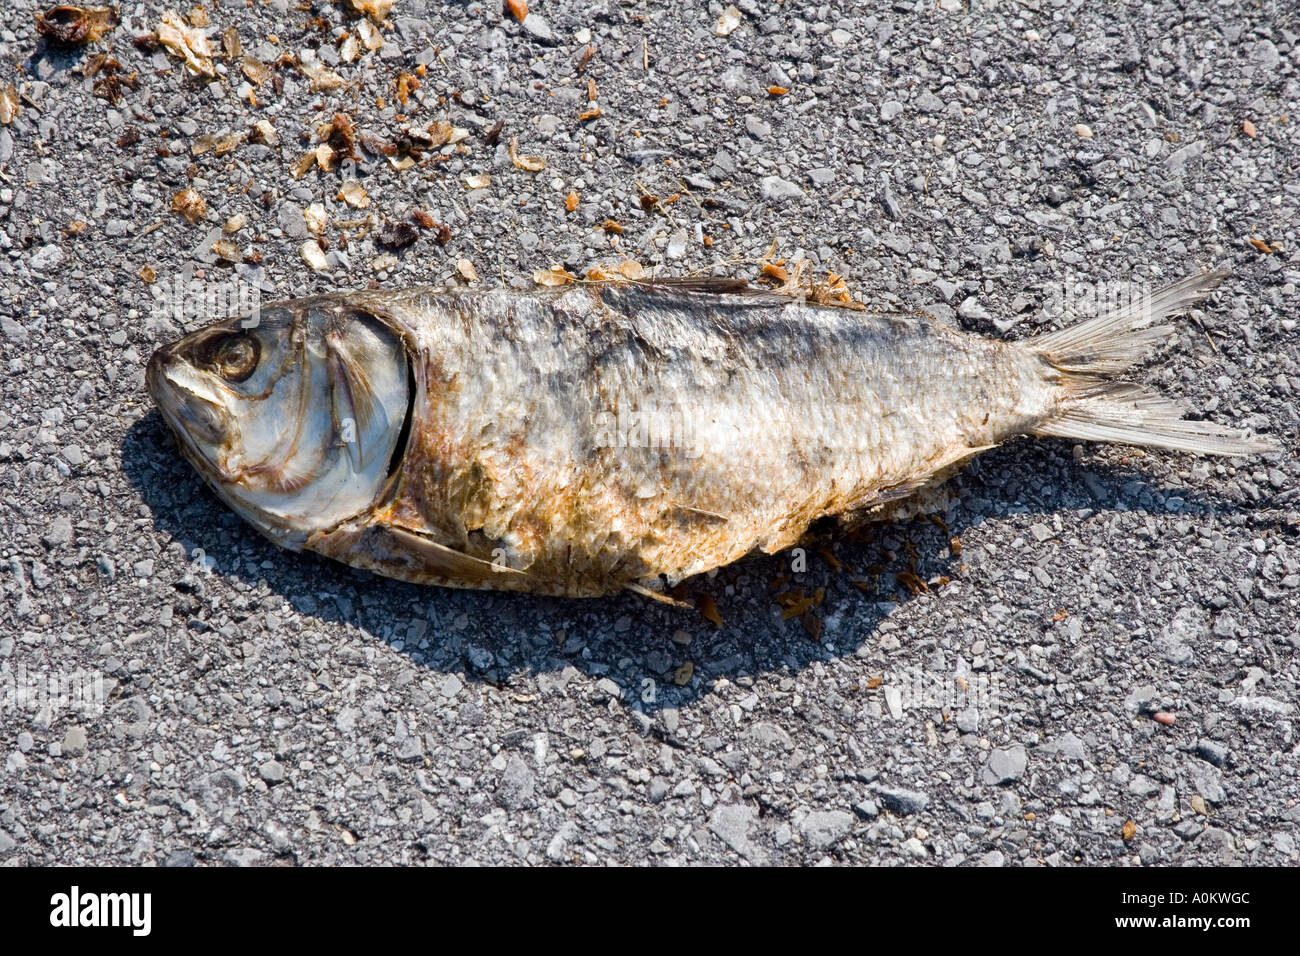 Dead fish left in the road after Hurricane Katrina in Louisiana - Stock Image